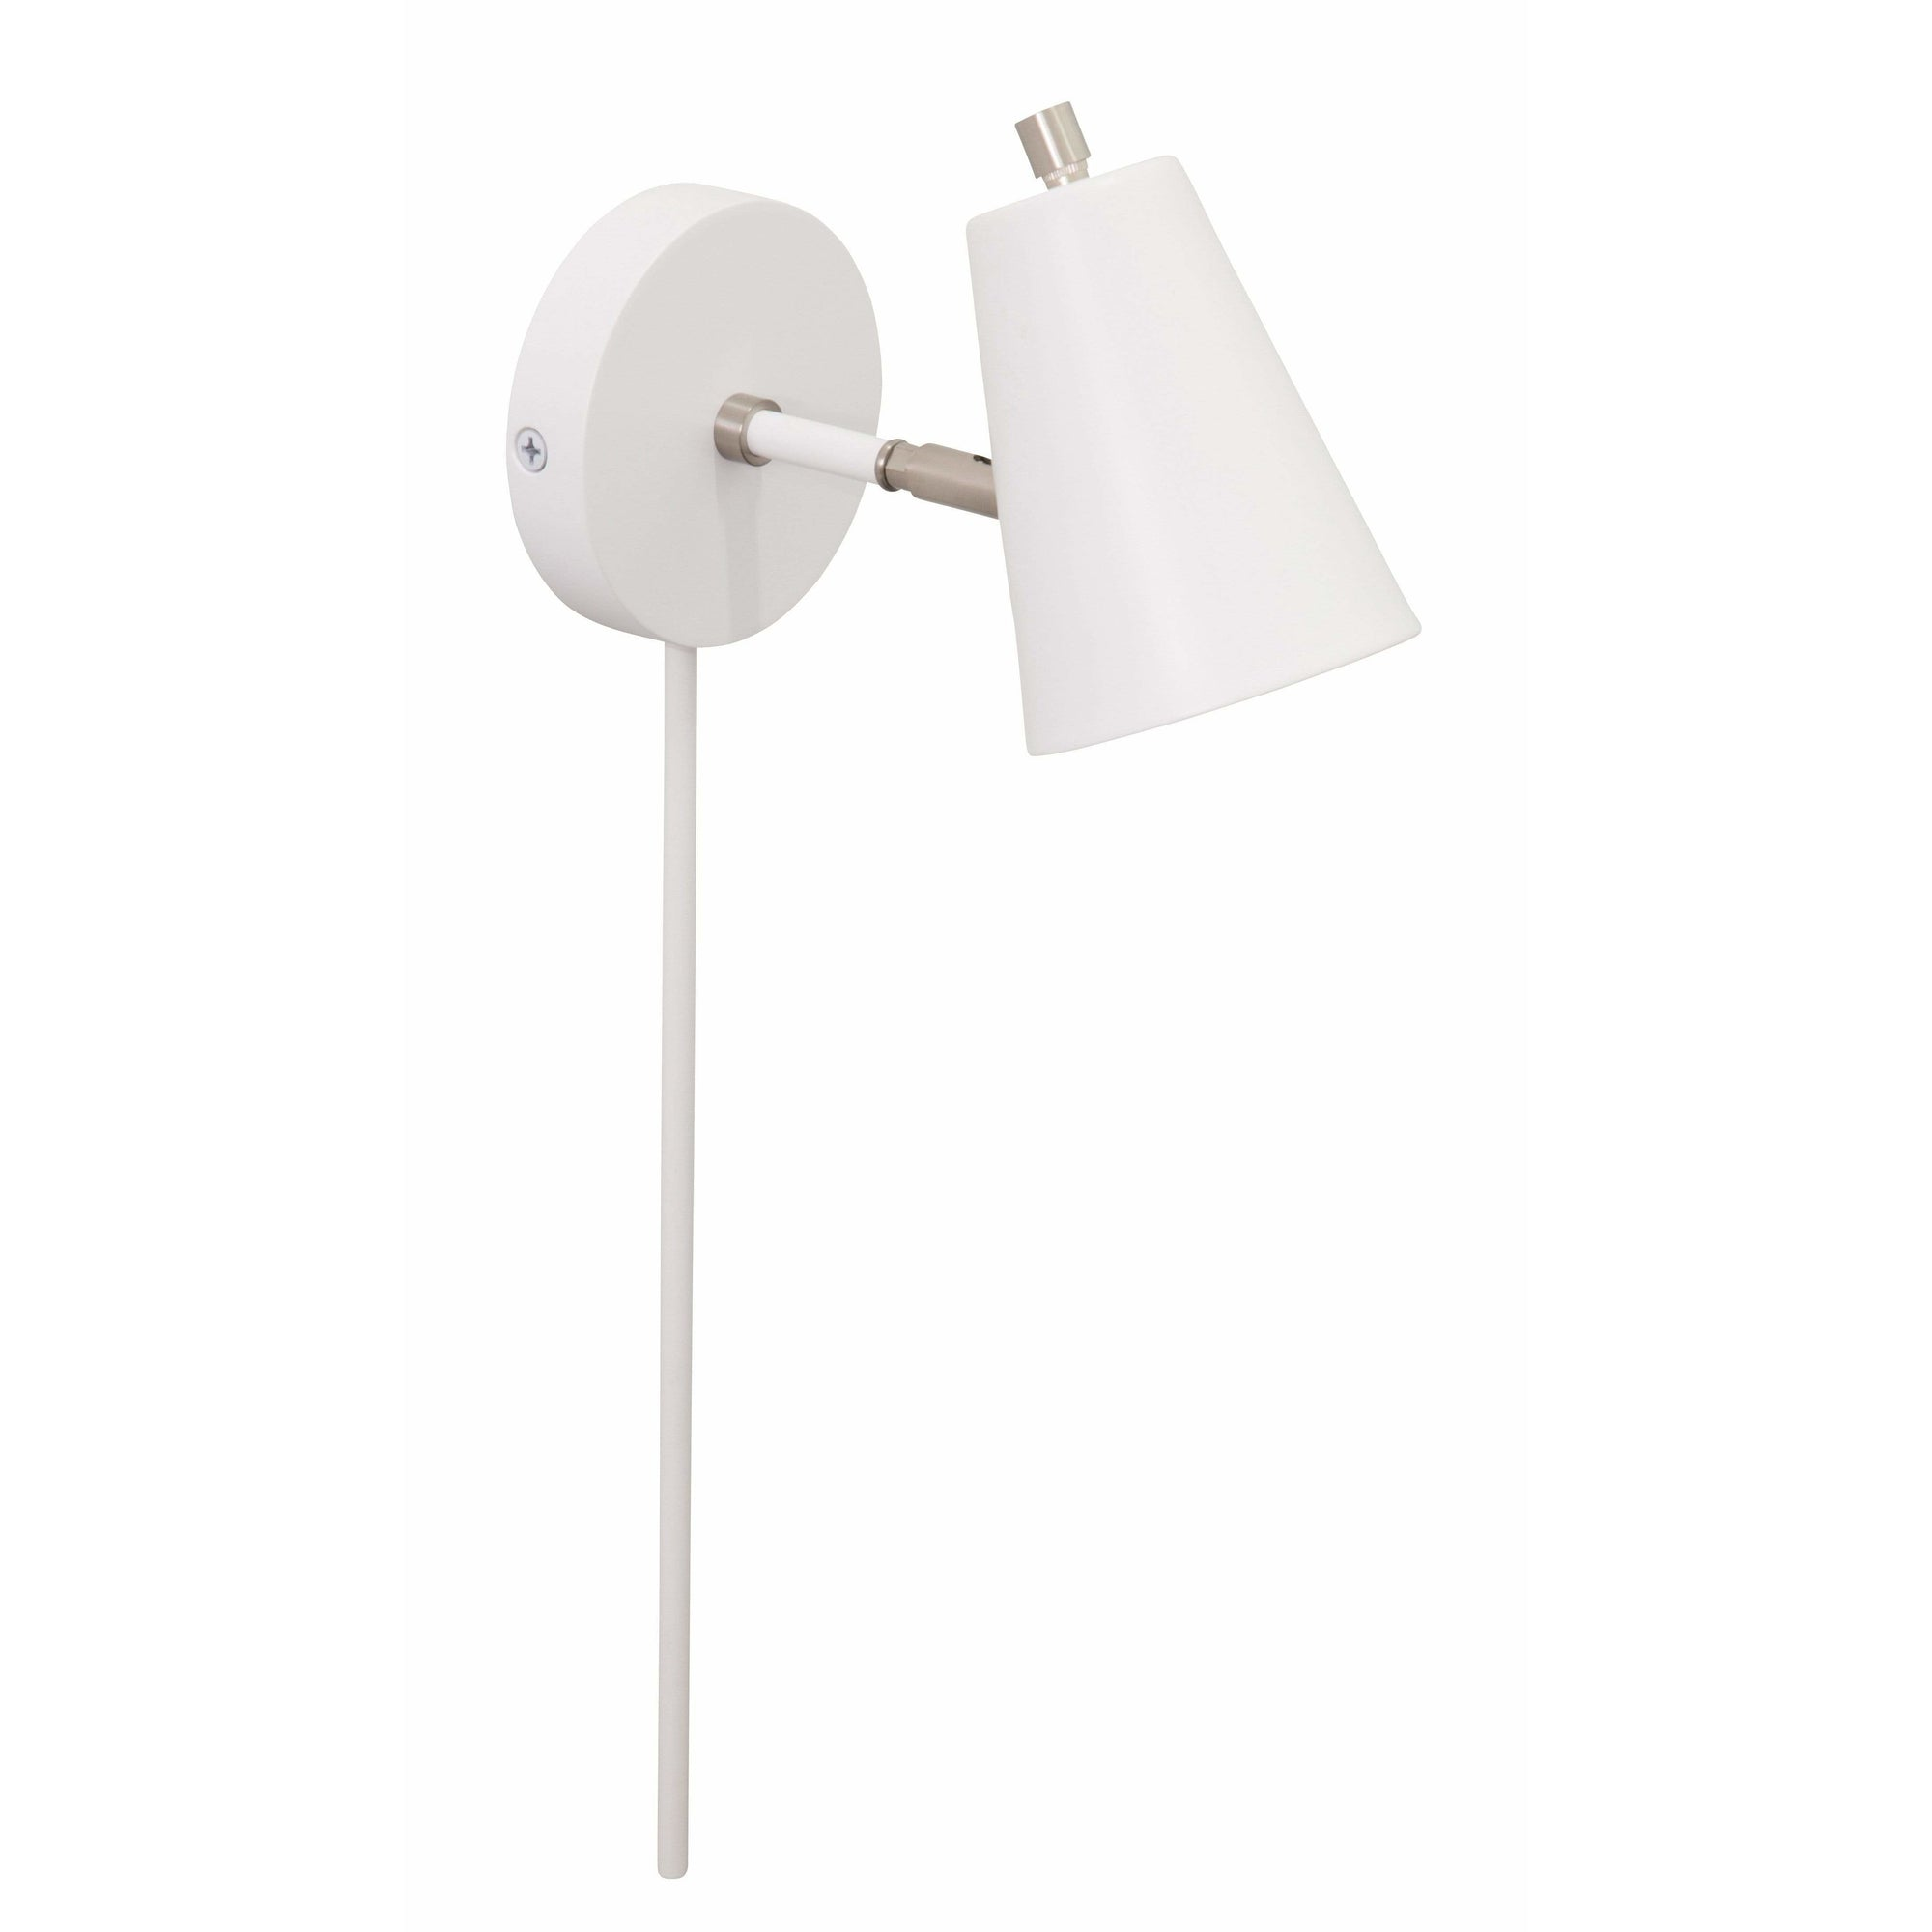 House Of Troy Wall Lamps Kirby LED Wall Lamp by House Of Troy K175-WT